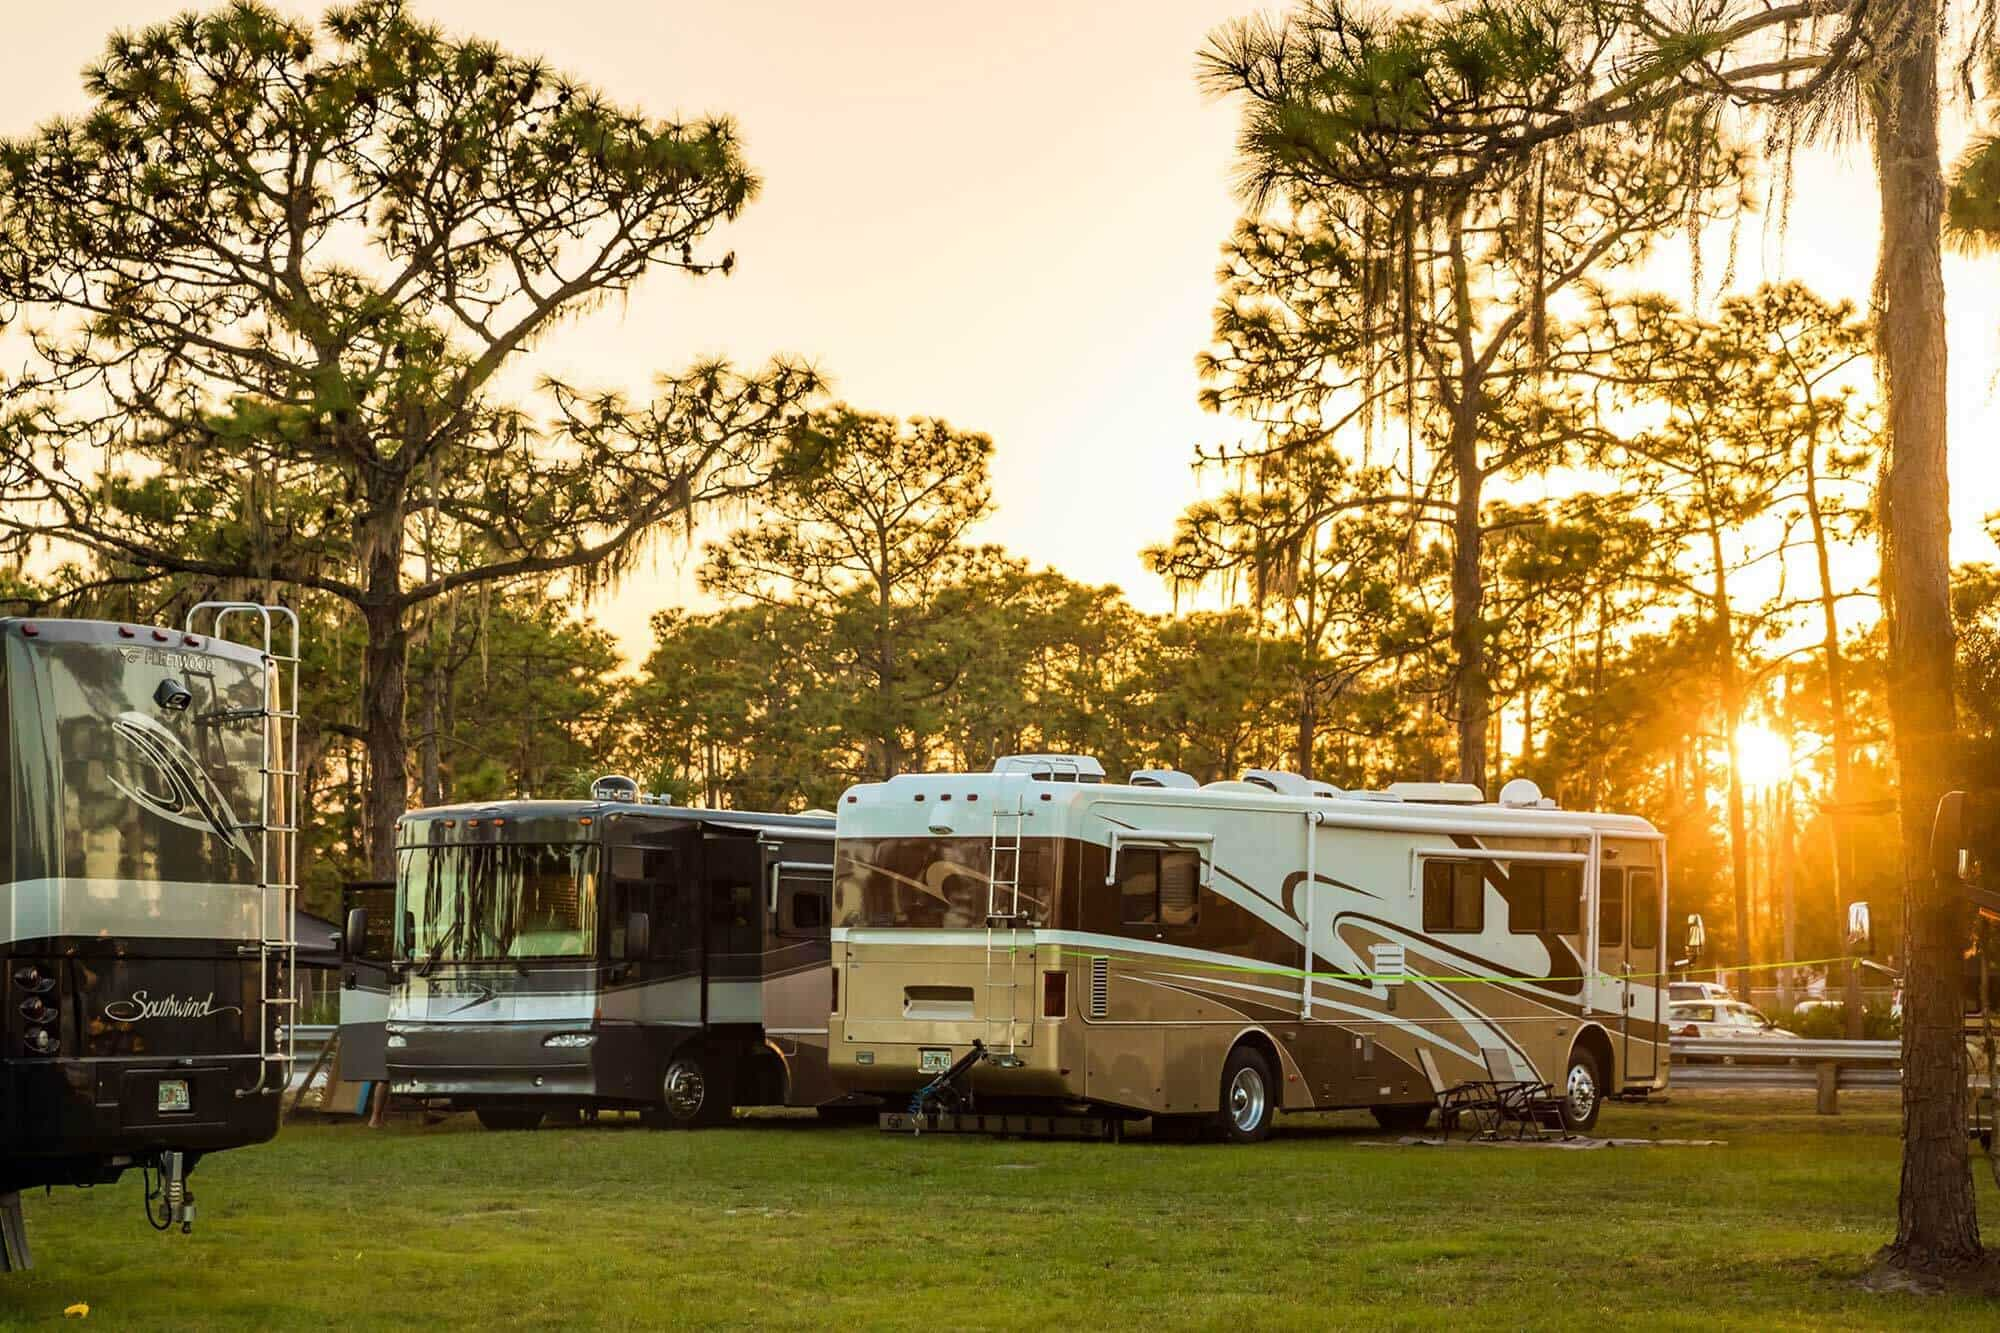 Resort at Canopy Oaks in Lake Wales, FL pre construction image showing RVs on grass under trees